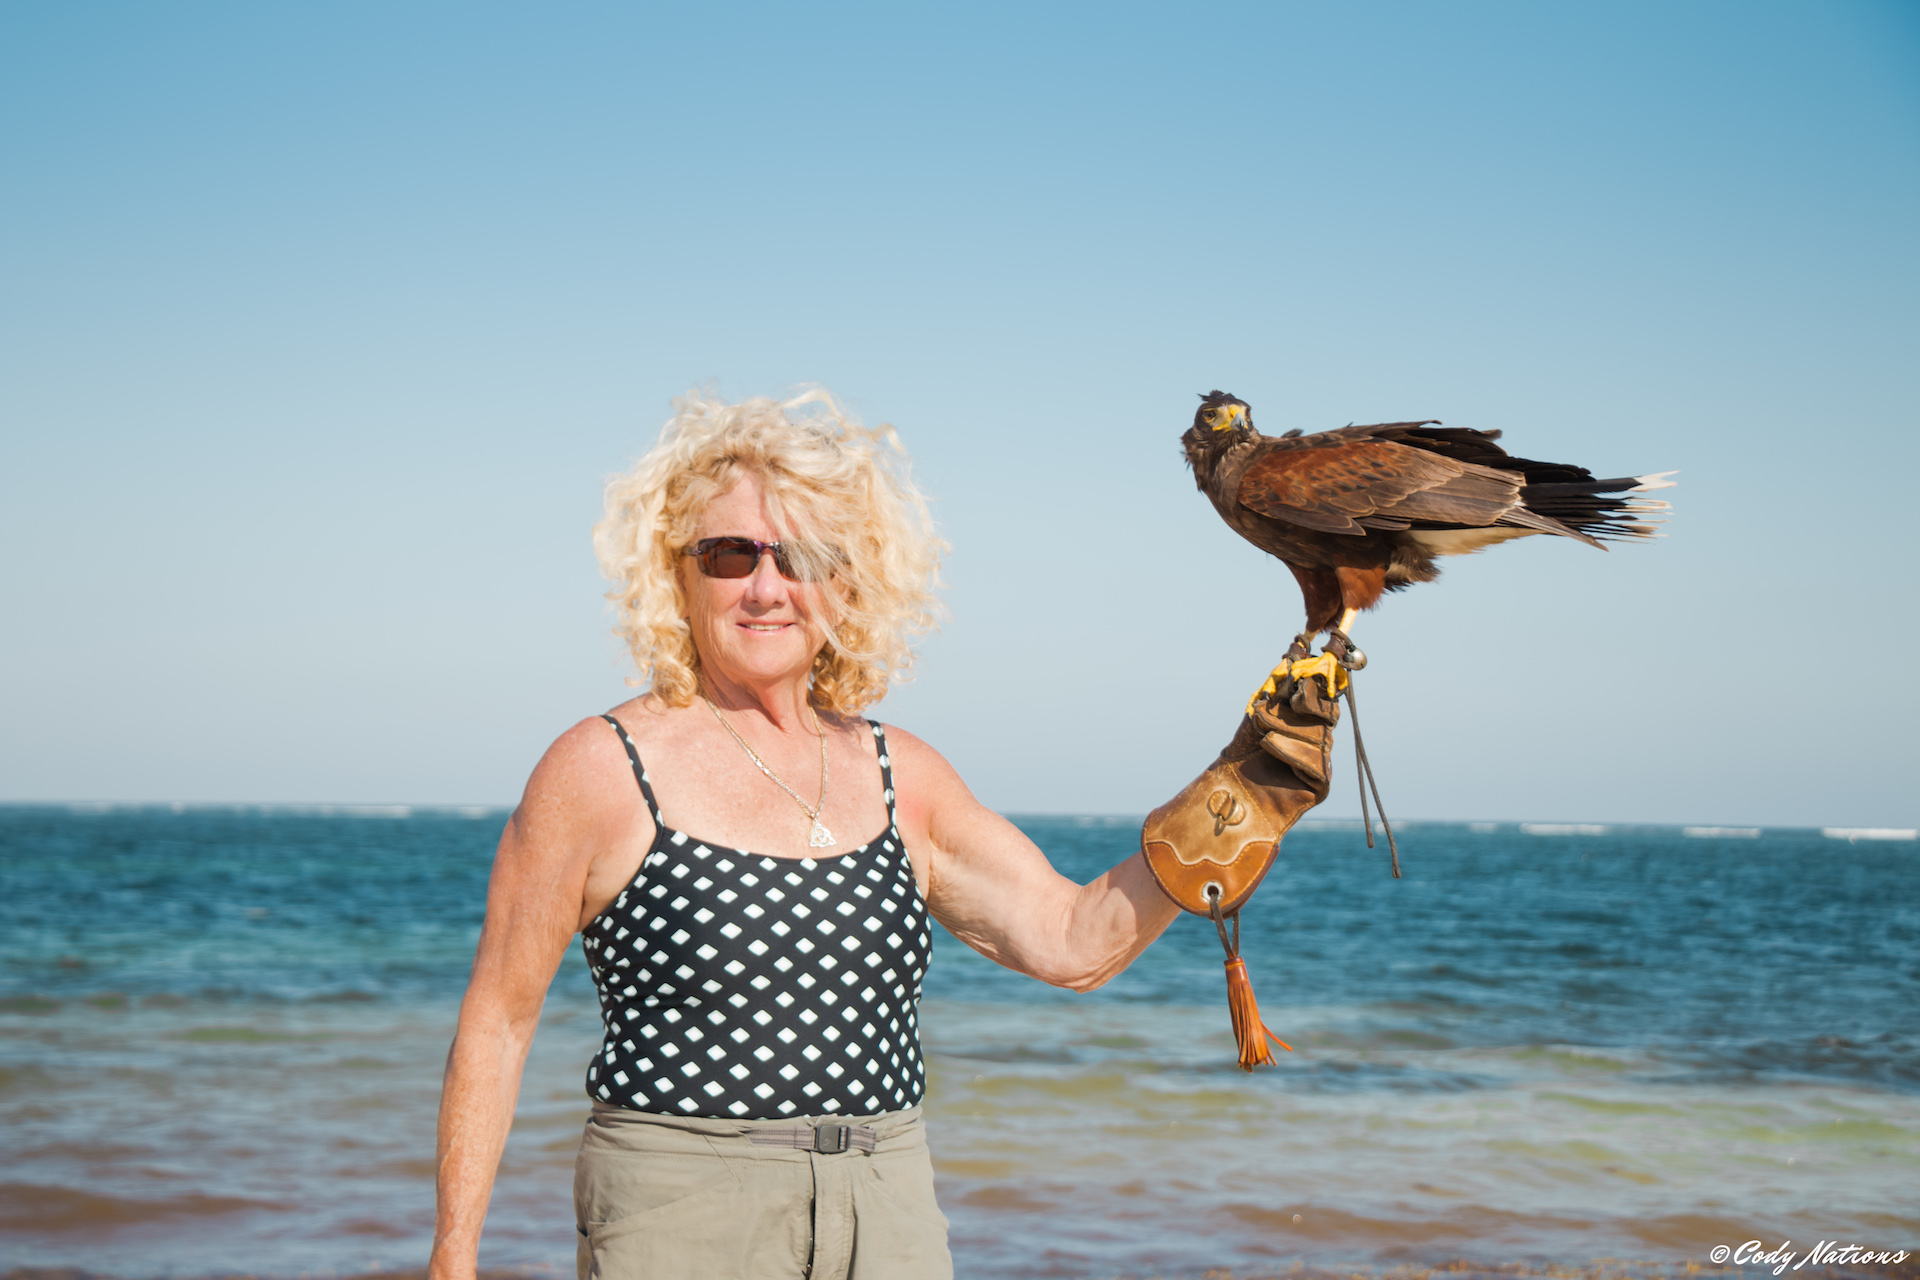 Caroline with bird.jpeg